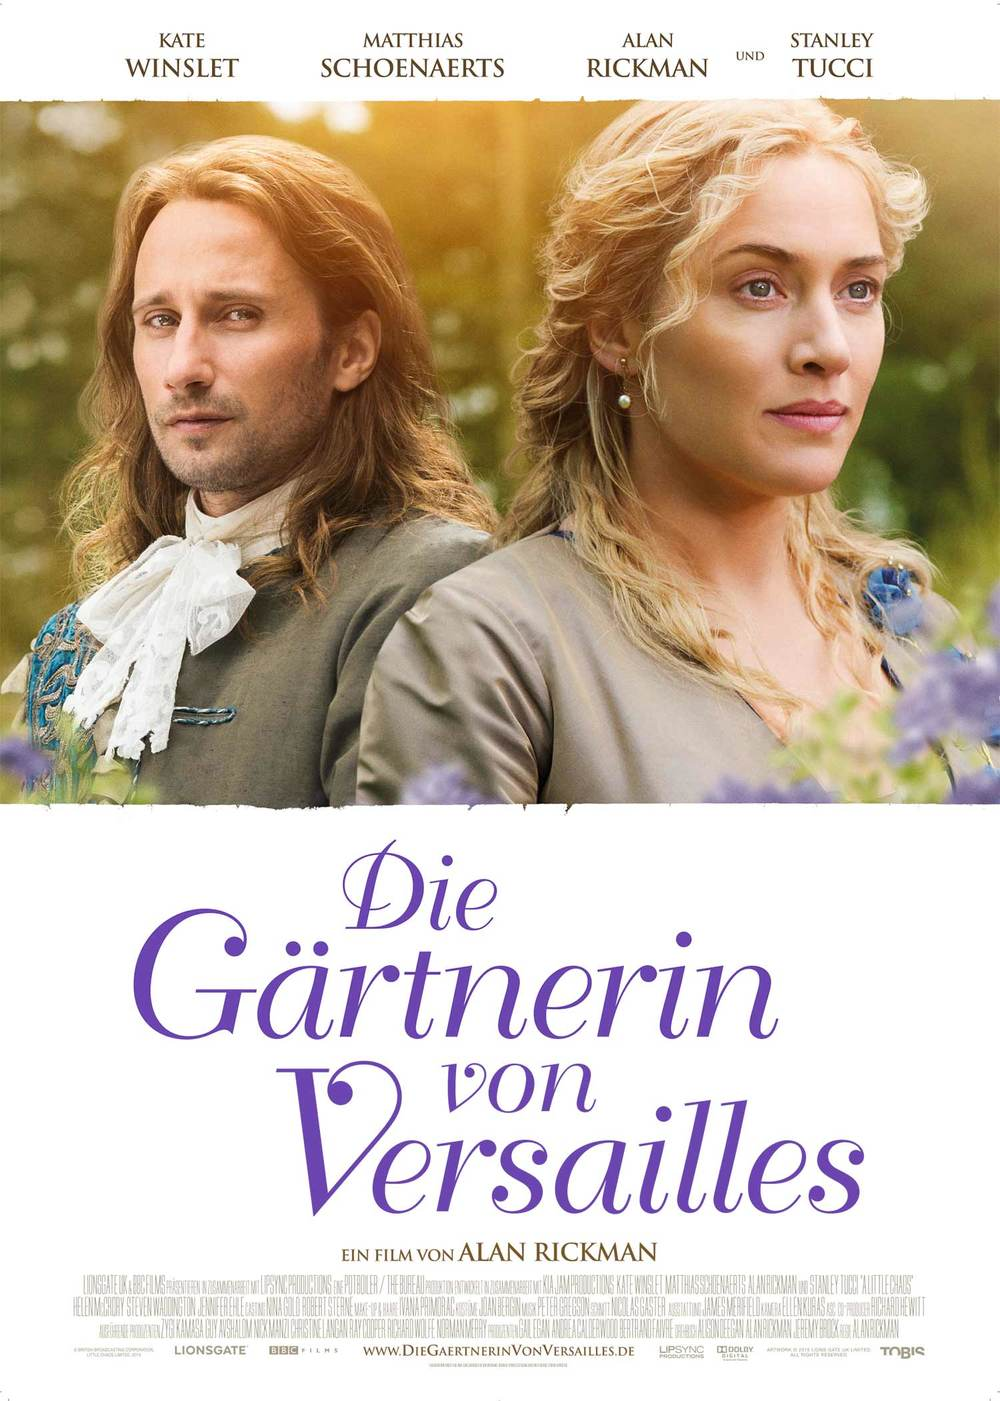 "Tobis<a href=""/die-gaertnerin-von-versailles"">→</a><strong>Adaption</strong>"